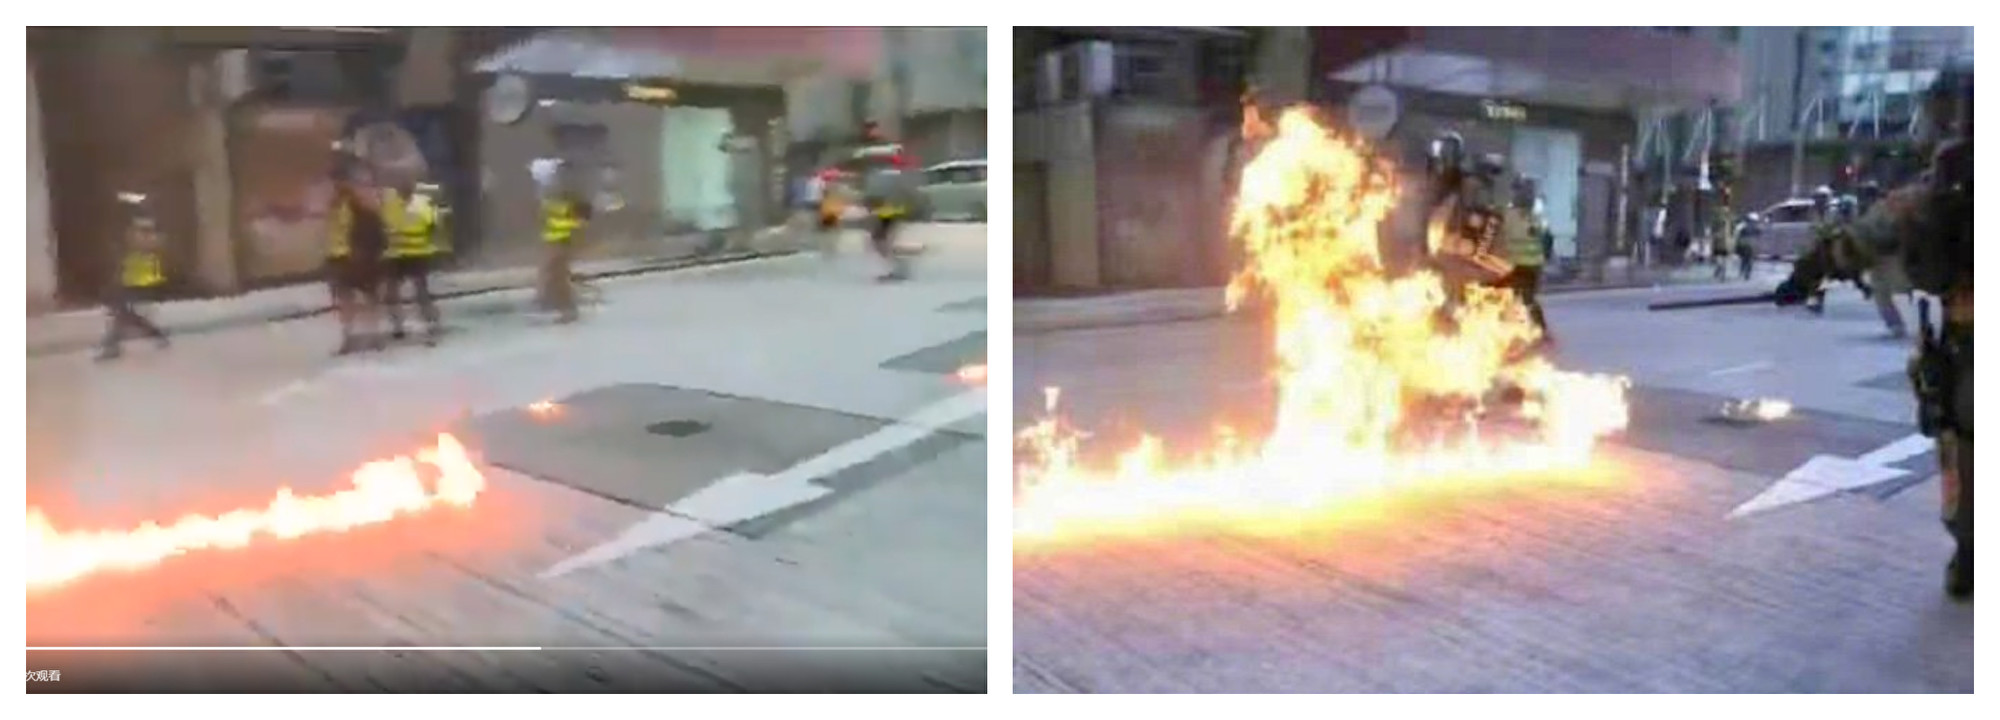 Comparison of Petrol Bomb Burning Pictures